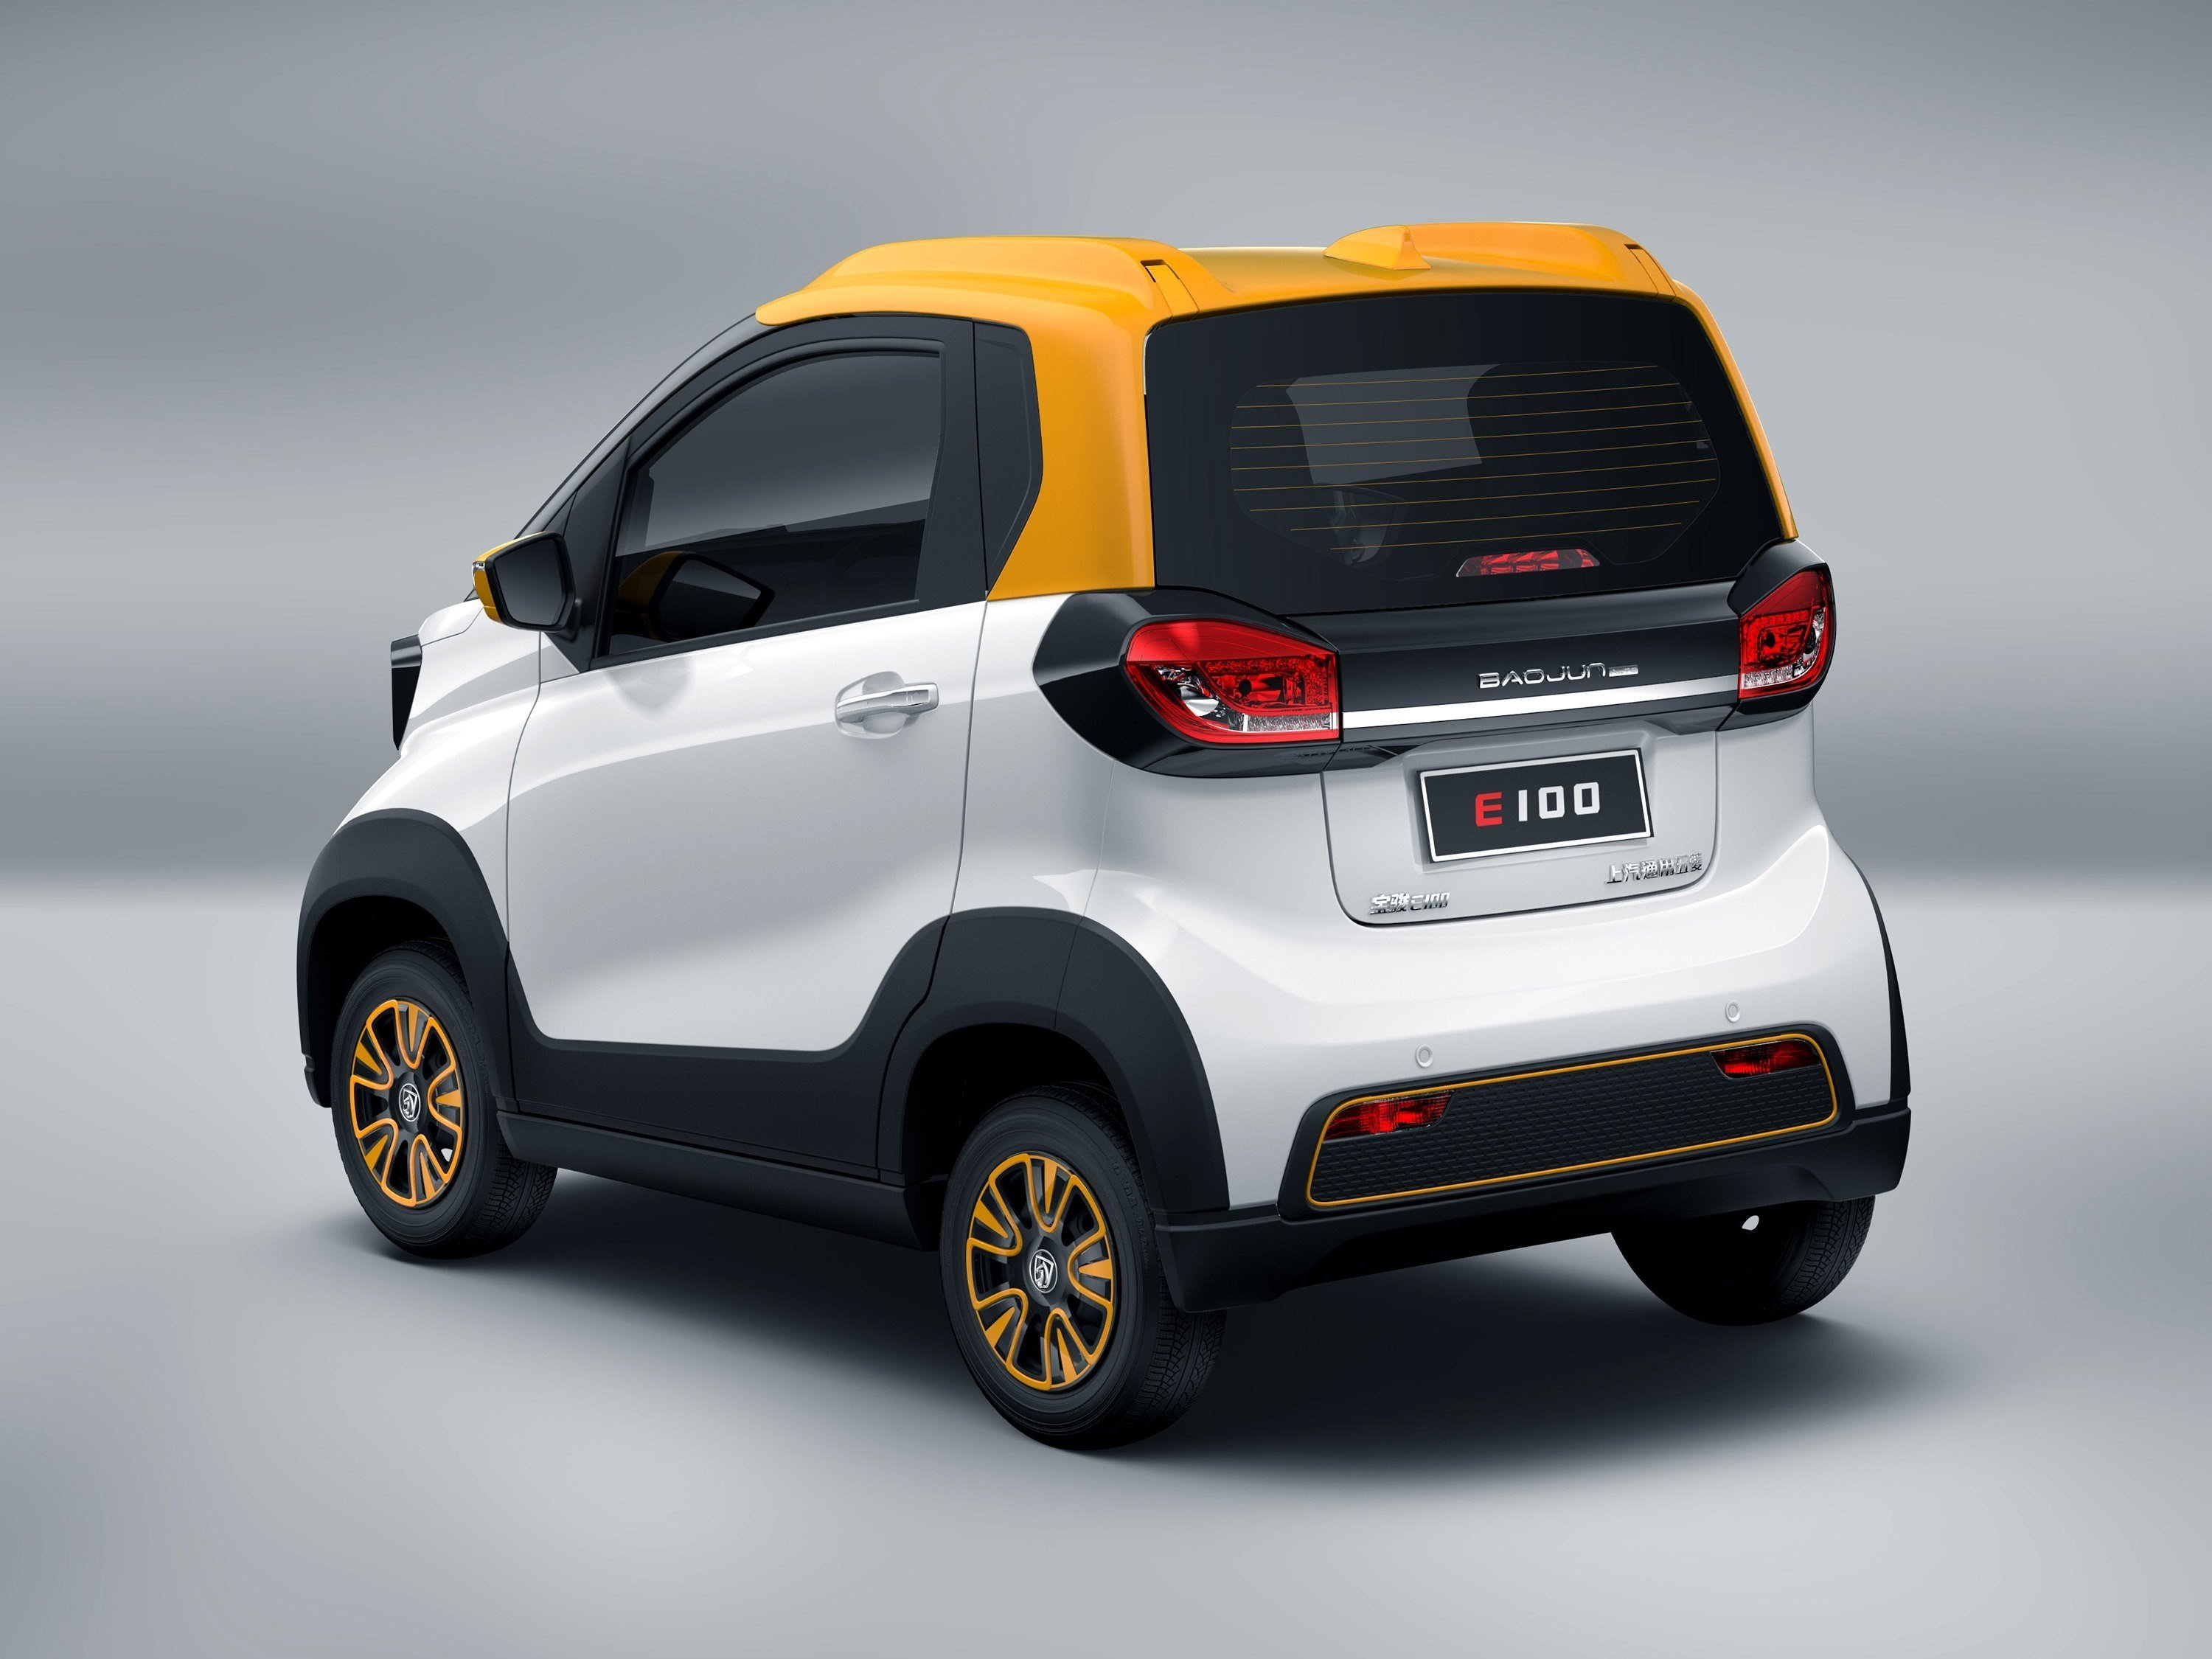 Image result for Baojun E100